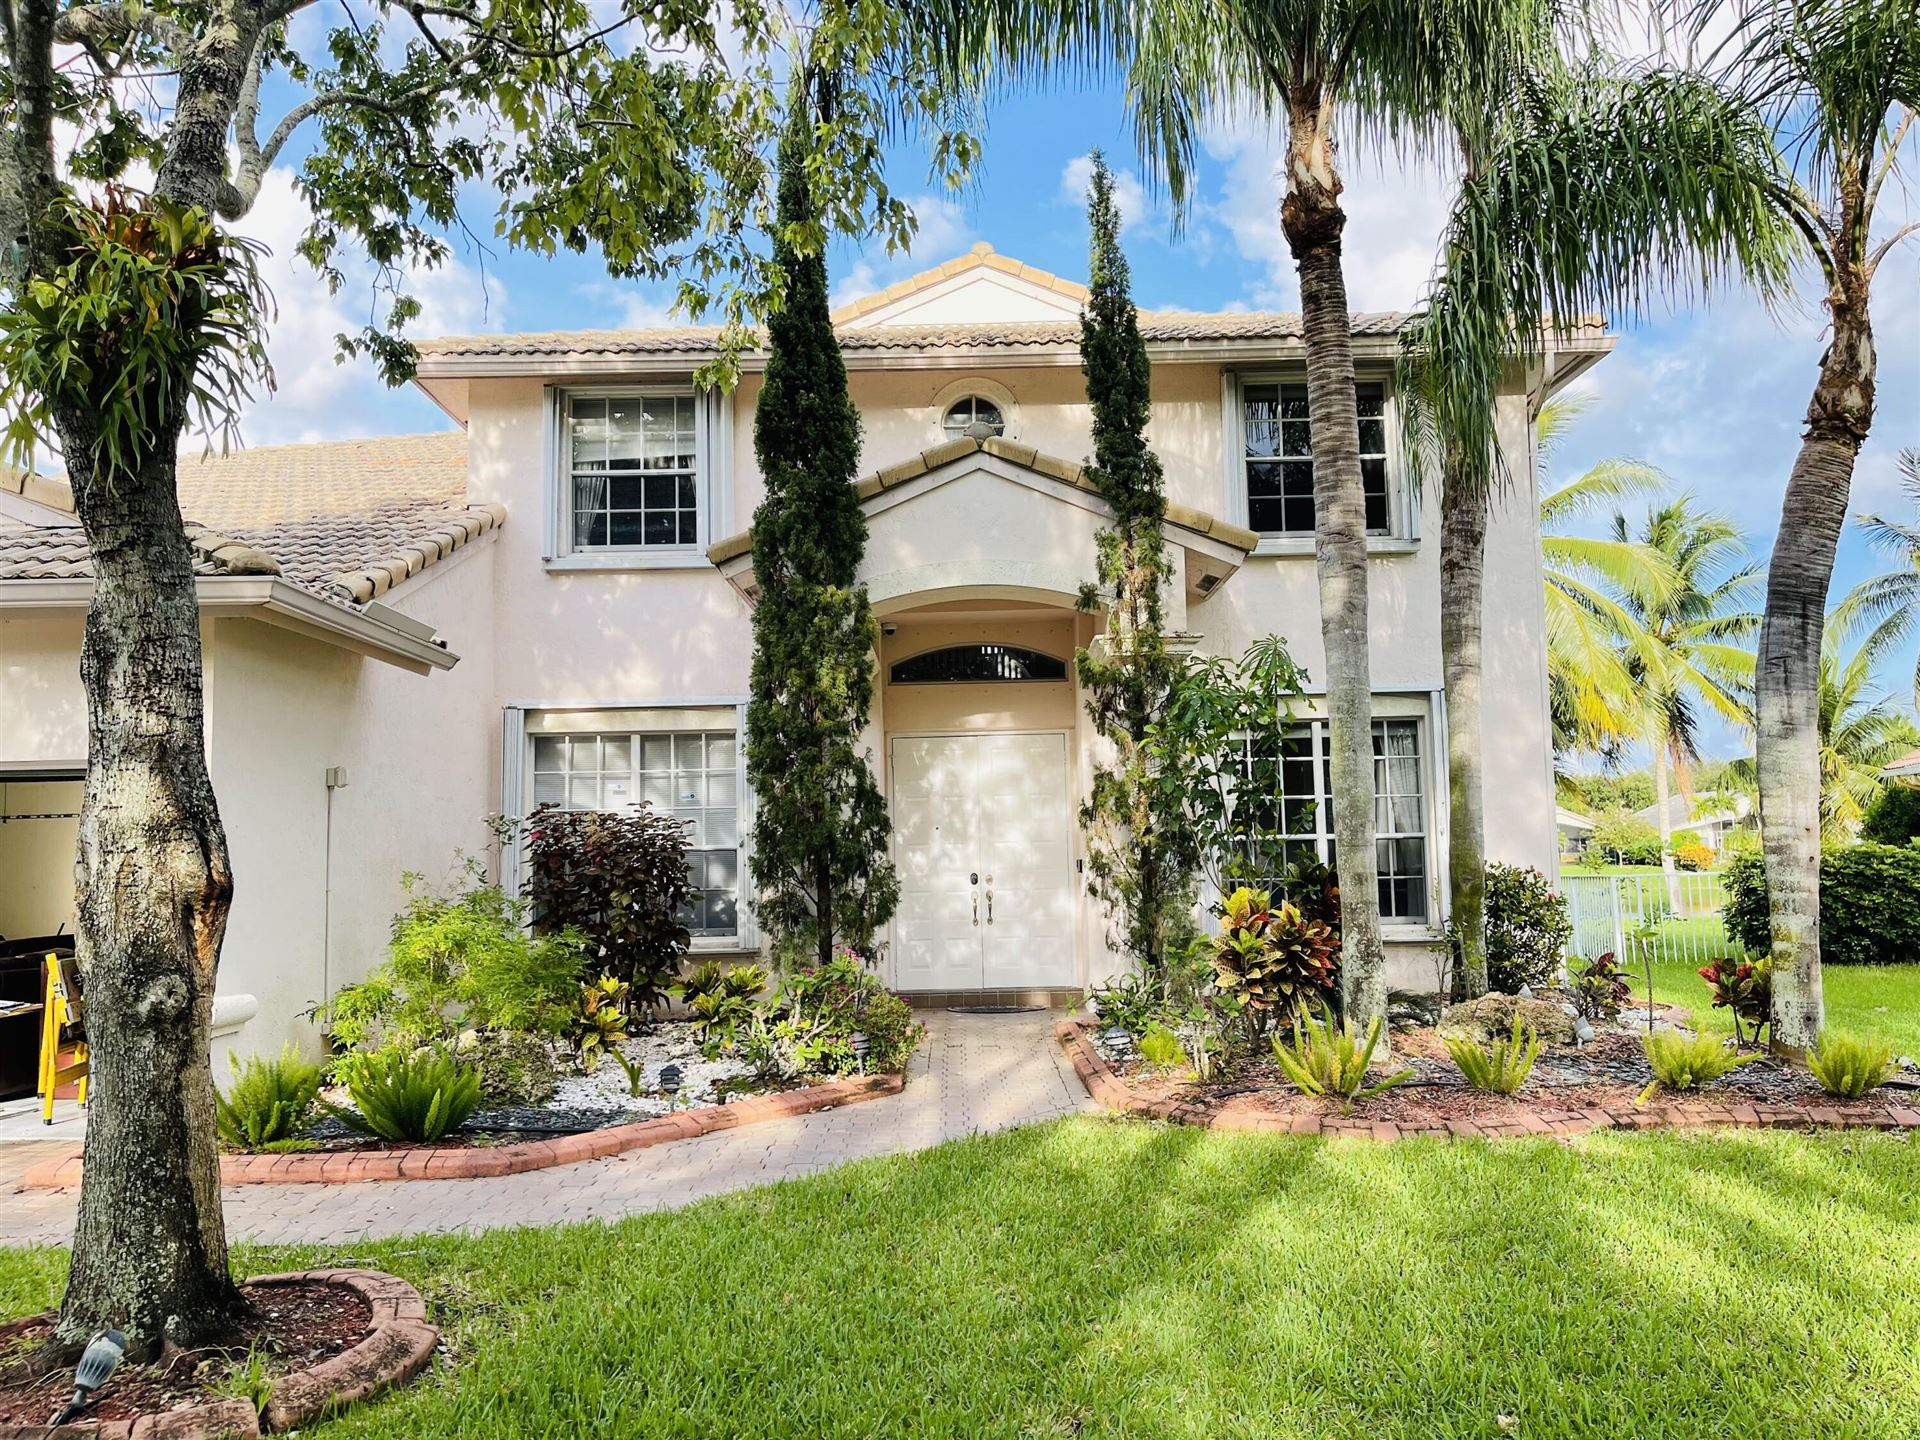 5041 NW 57th Terrace, Coral Springs, FL 33067 - #: RX-10739446